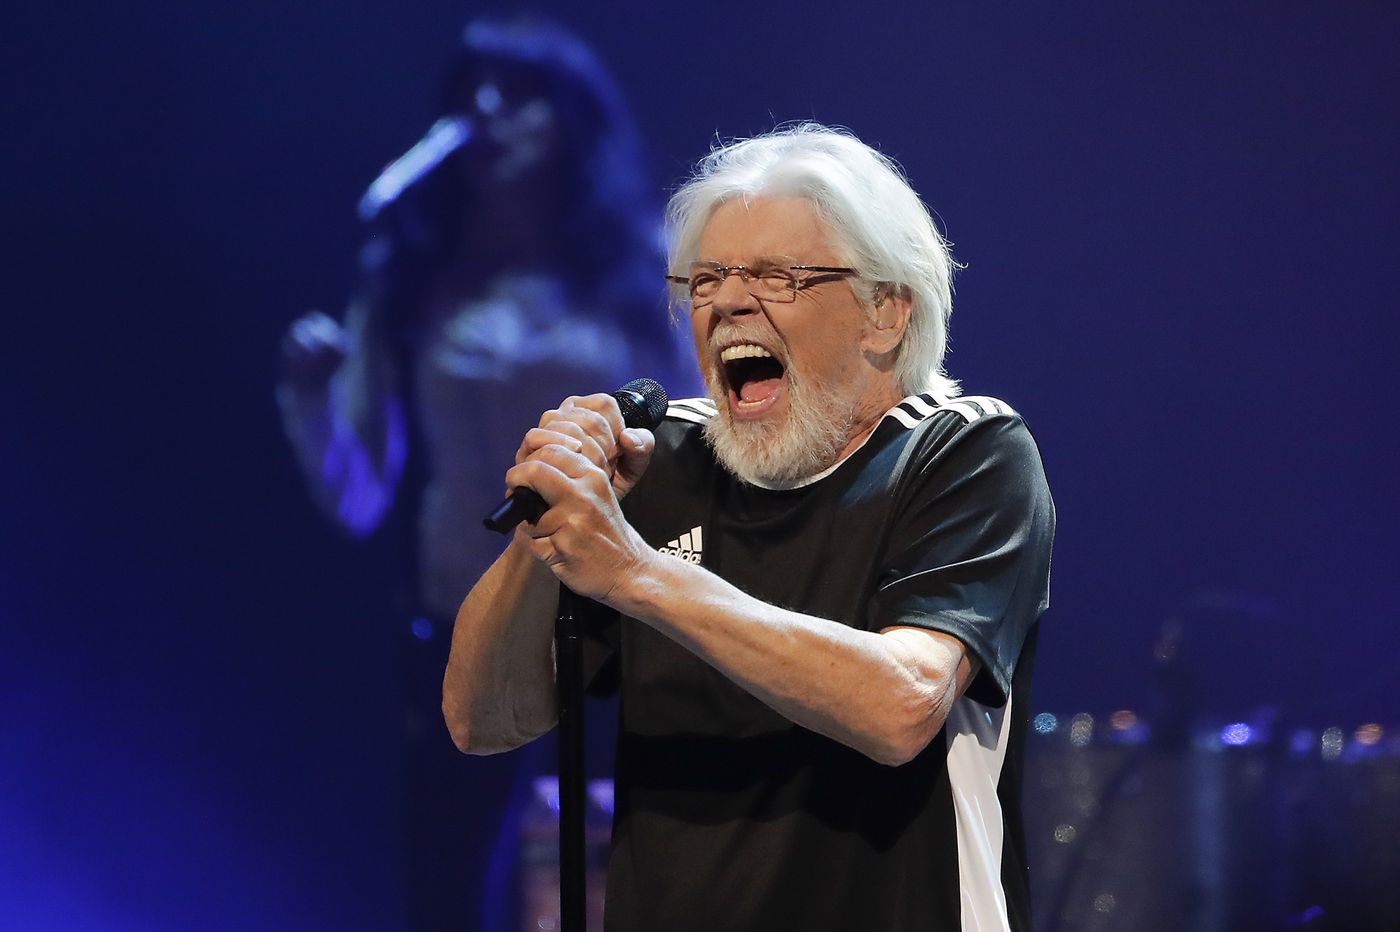 Did Bob Seger play his last show ever at the Wells Fargo Center on Friday night?